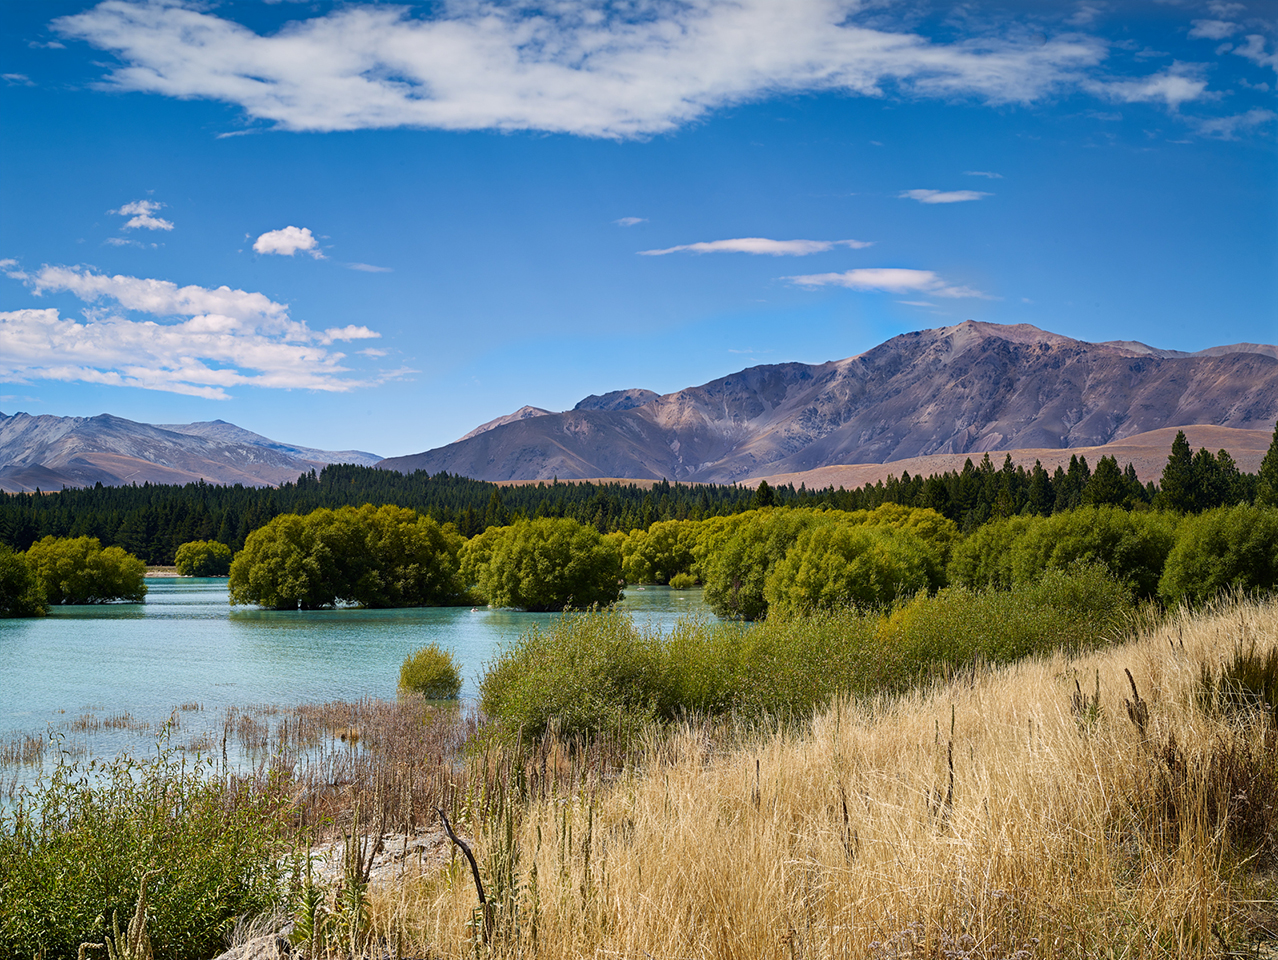 New Zealand On Way To Mt Cook by alajuela in alajuela